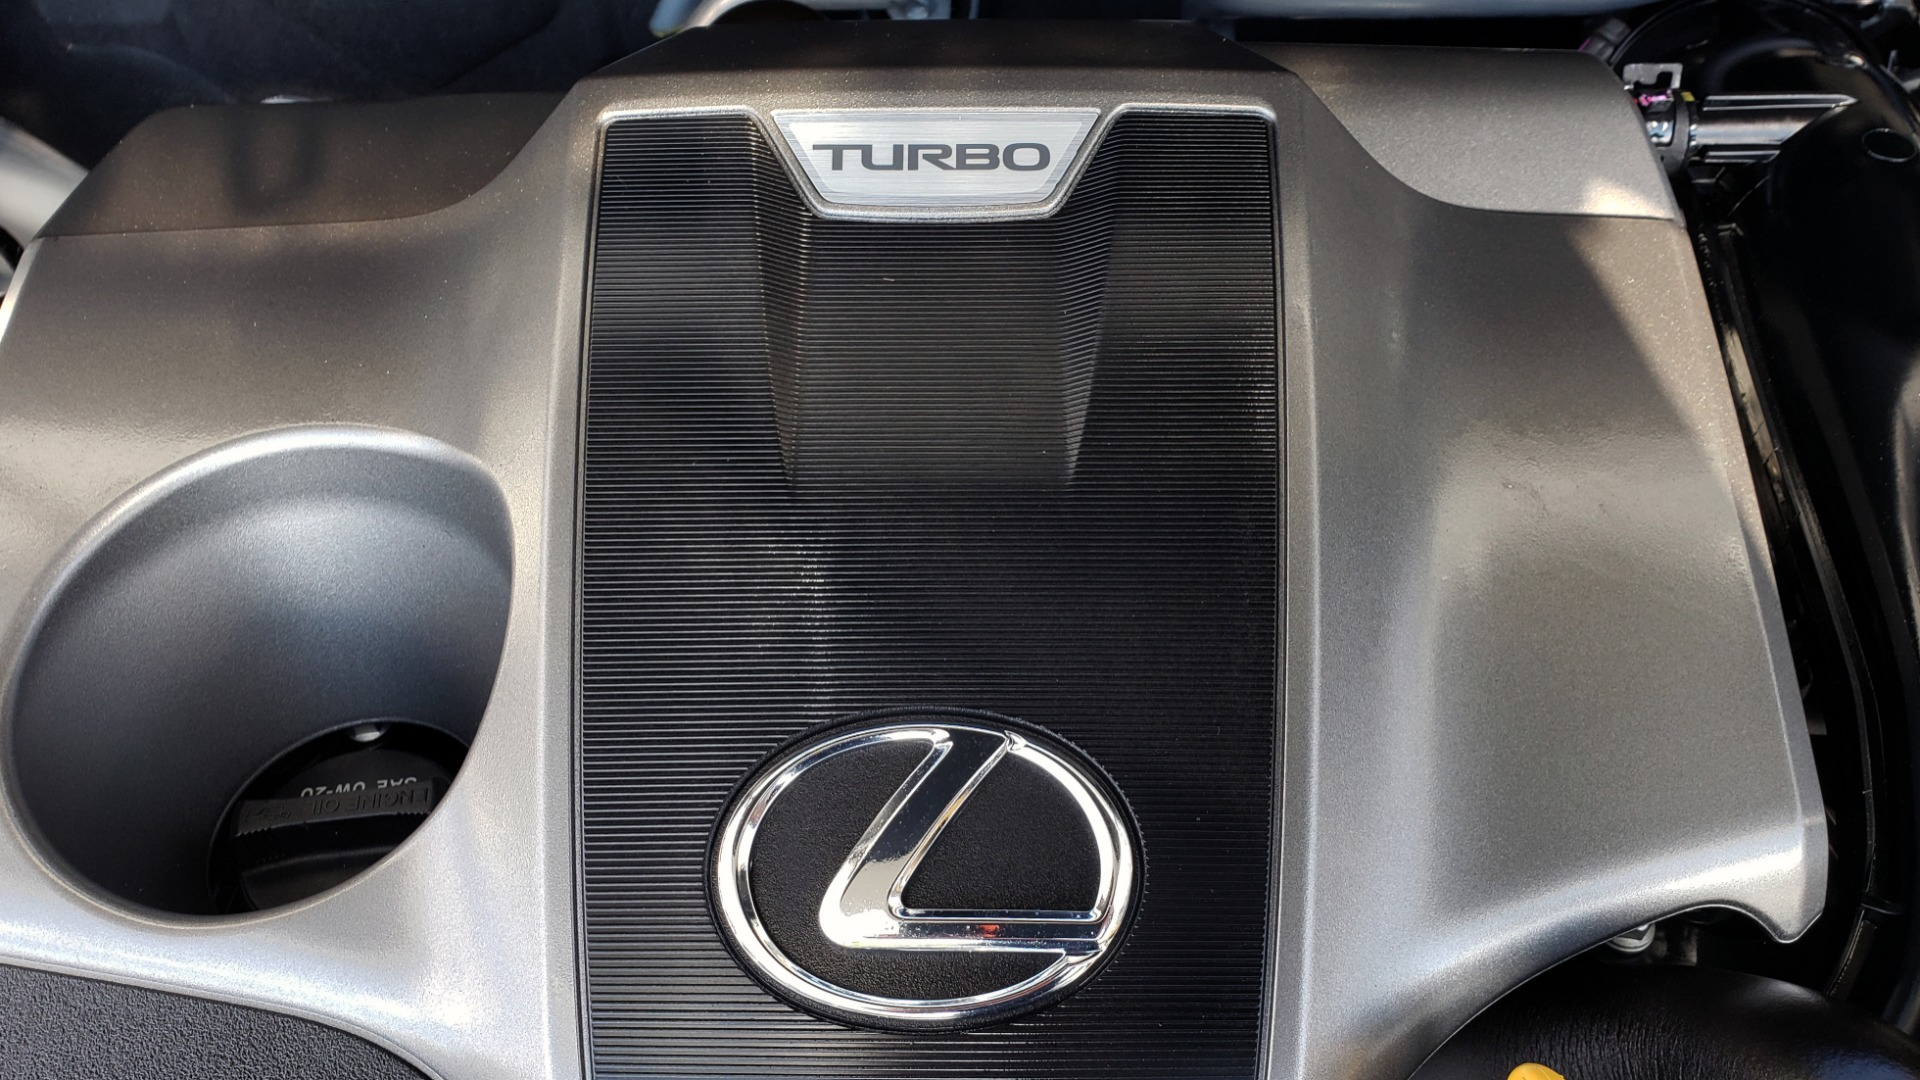 Used 2019 Lexus NX 300 F-SPORT / 2.0L TURBO / LEATHER / 18IN WHEELS / REARVIEW for sale Sold at Formula Imports in Charlotte NC 28227 15